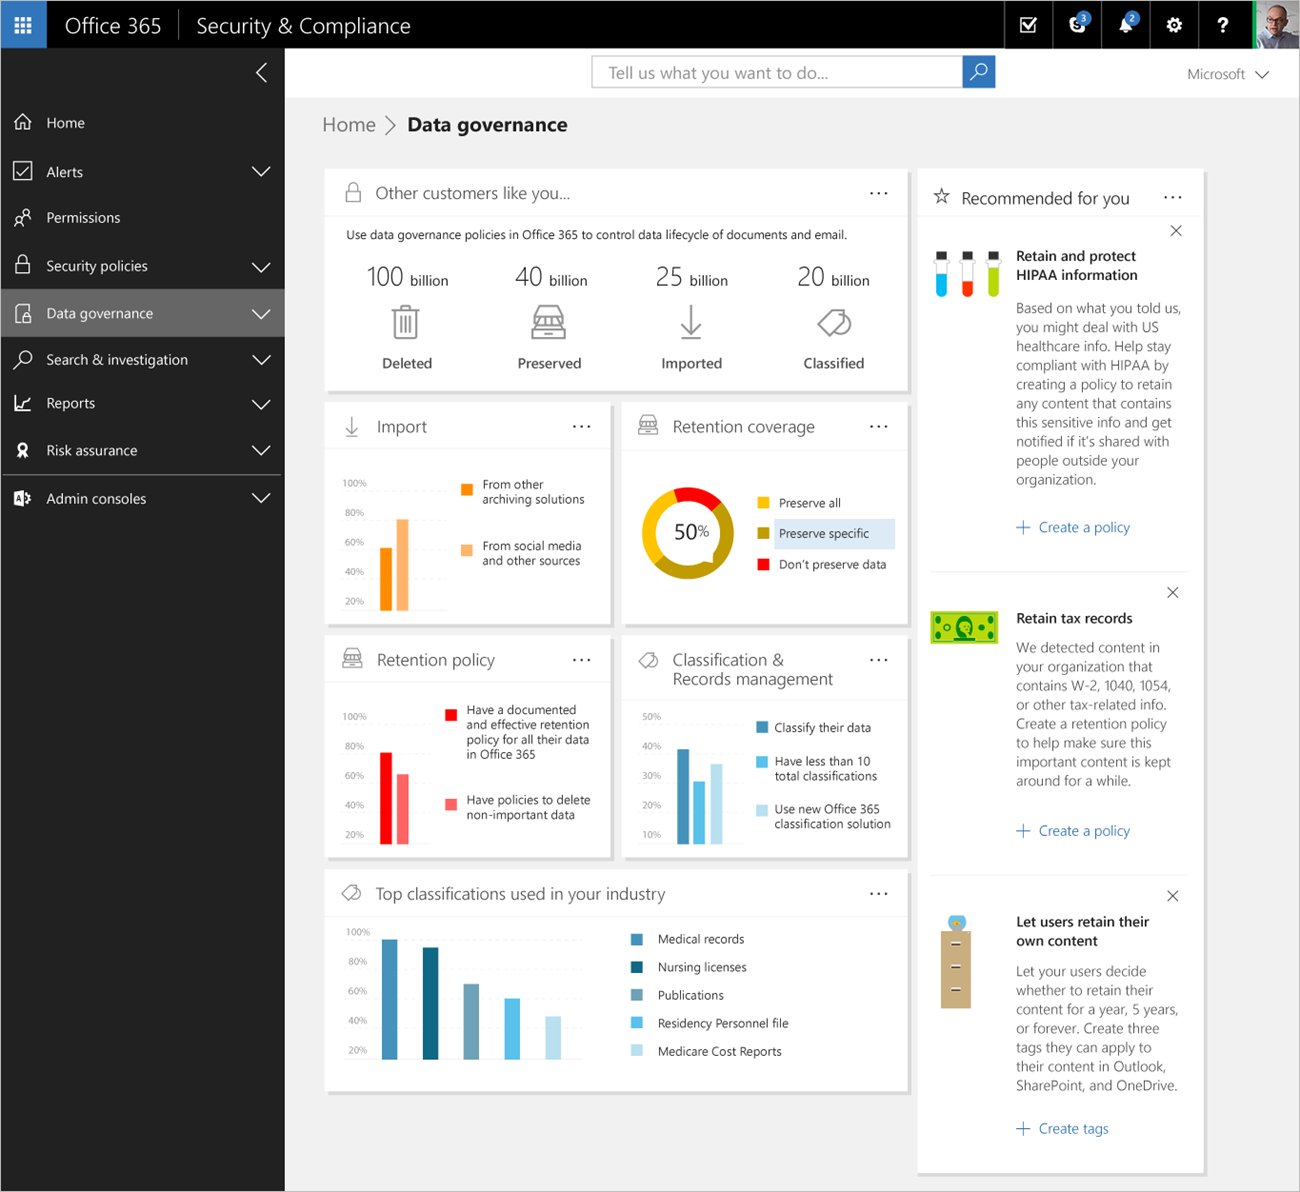 Microsoft Announces Data Governance Dashboard For Office 365 Google Ends Support For Android Developer Tools In Eclipse And Aws Releases Amazo Recherche Google